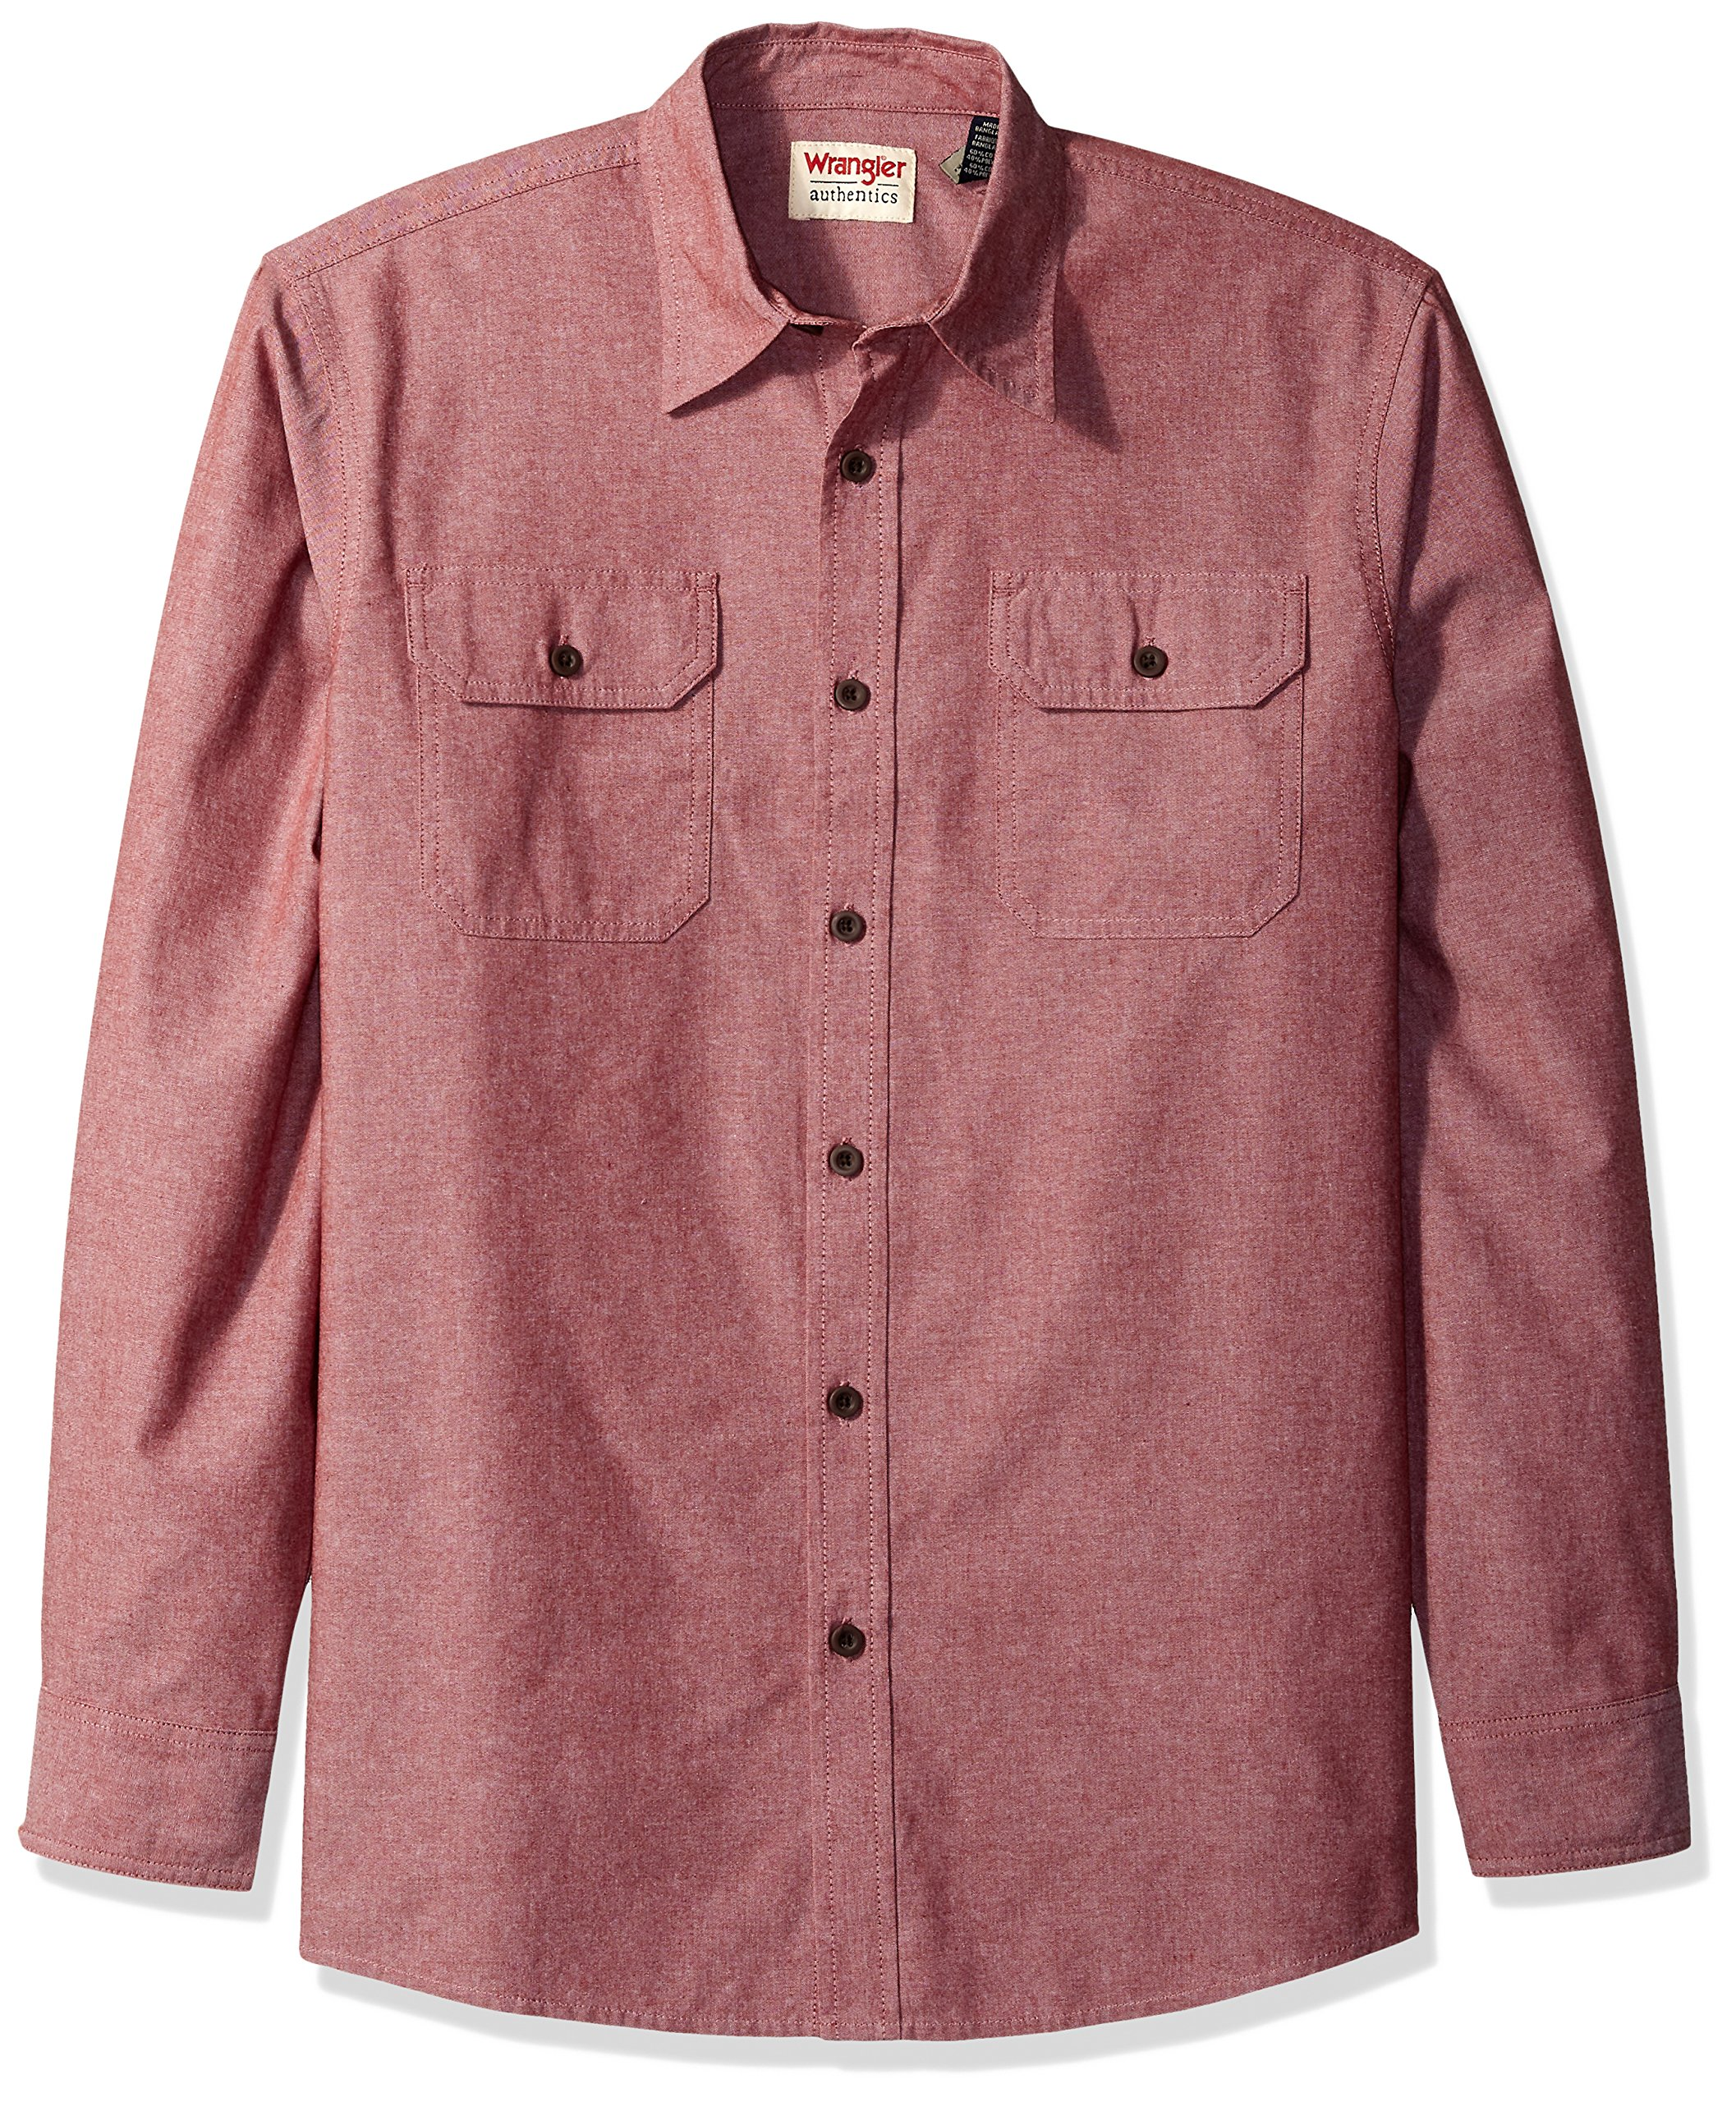 Wrangler Authentics Men's Authentics Long Sleeve Classic Woven Shirt, Cowhide Chambray, 2XL by Wrangler